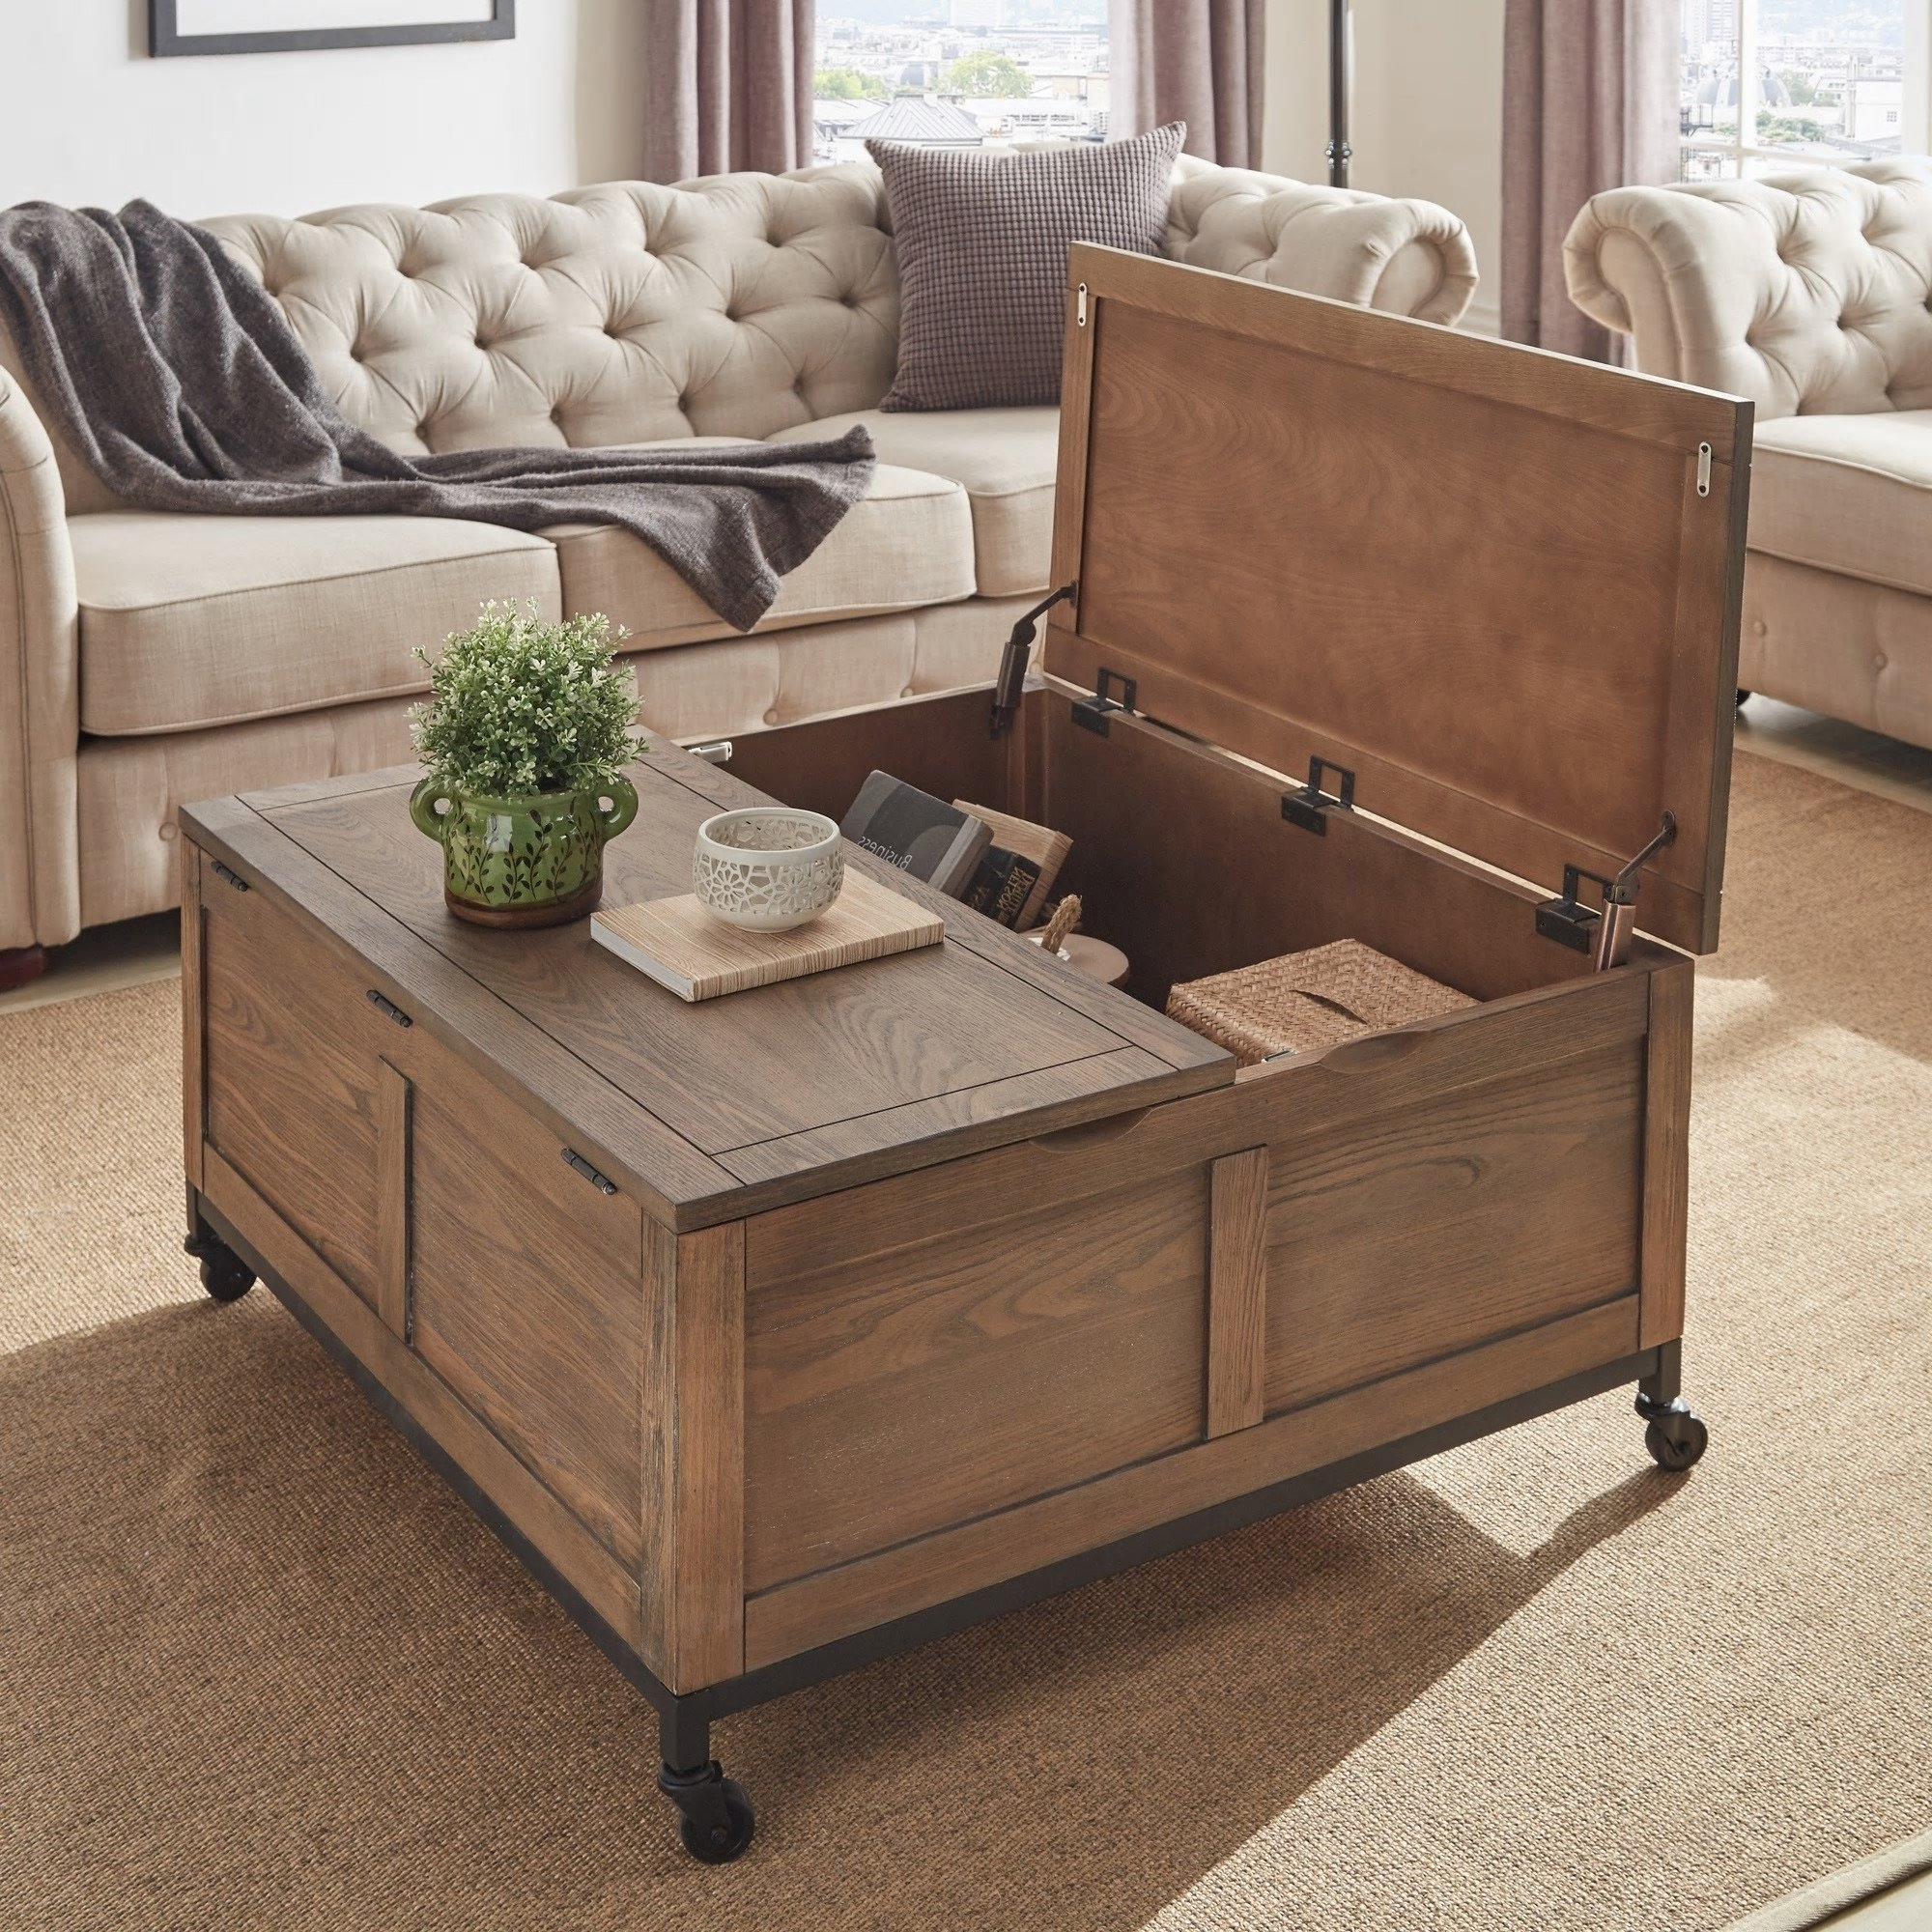 Famous Grant Lift Top Cocktail Tables With Casters With Regard To Shop Shay Square Storage Trunk Cocktail Table With Caster Wheels (View 11 of 20)